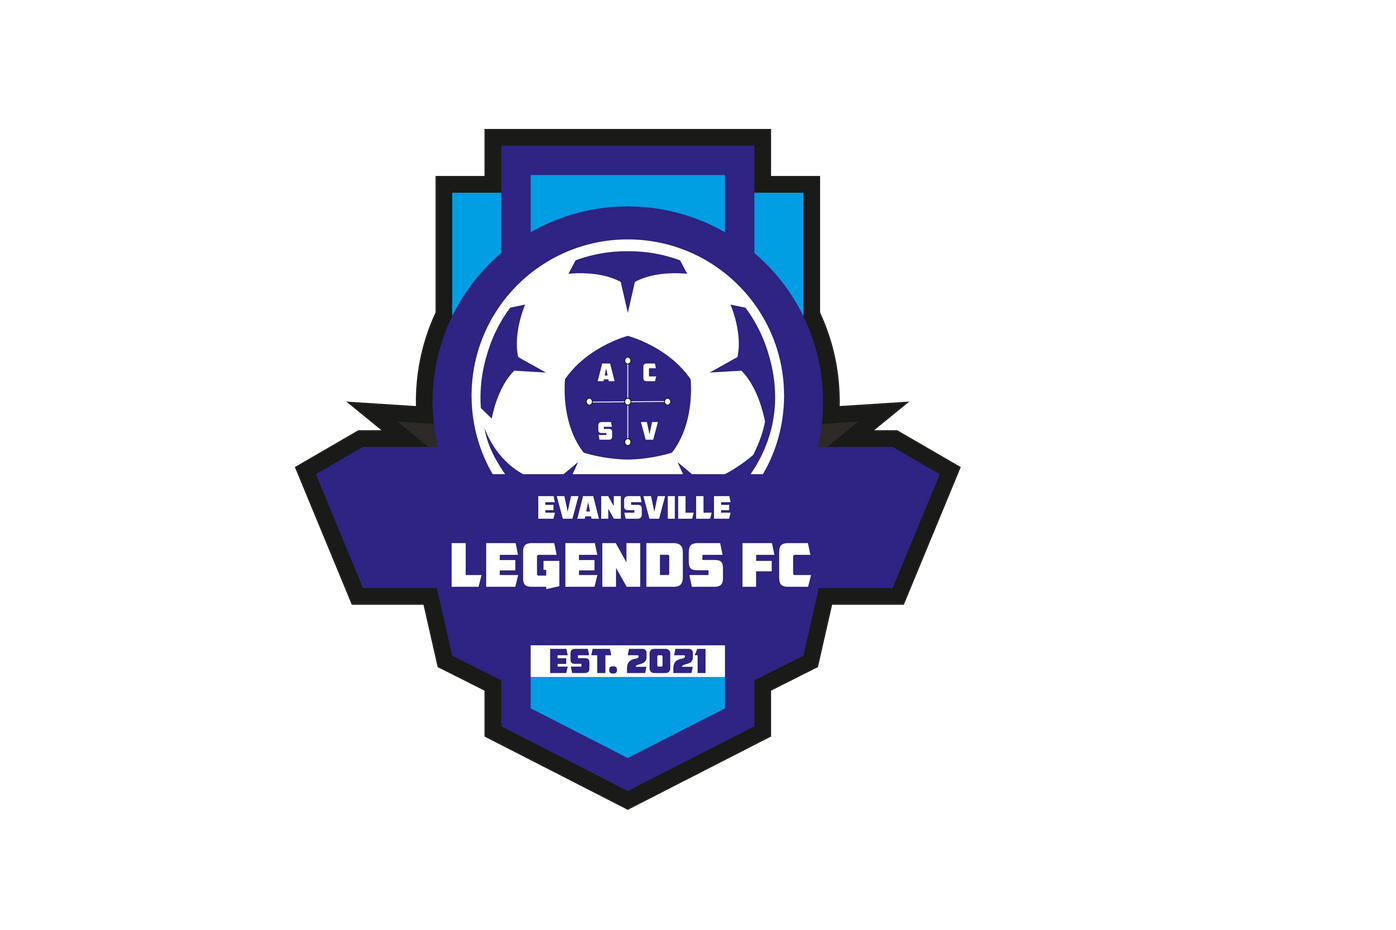 Evansville Legends FC